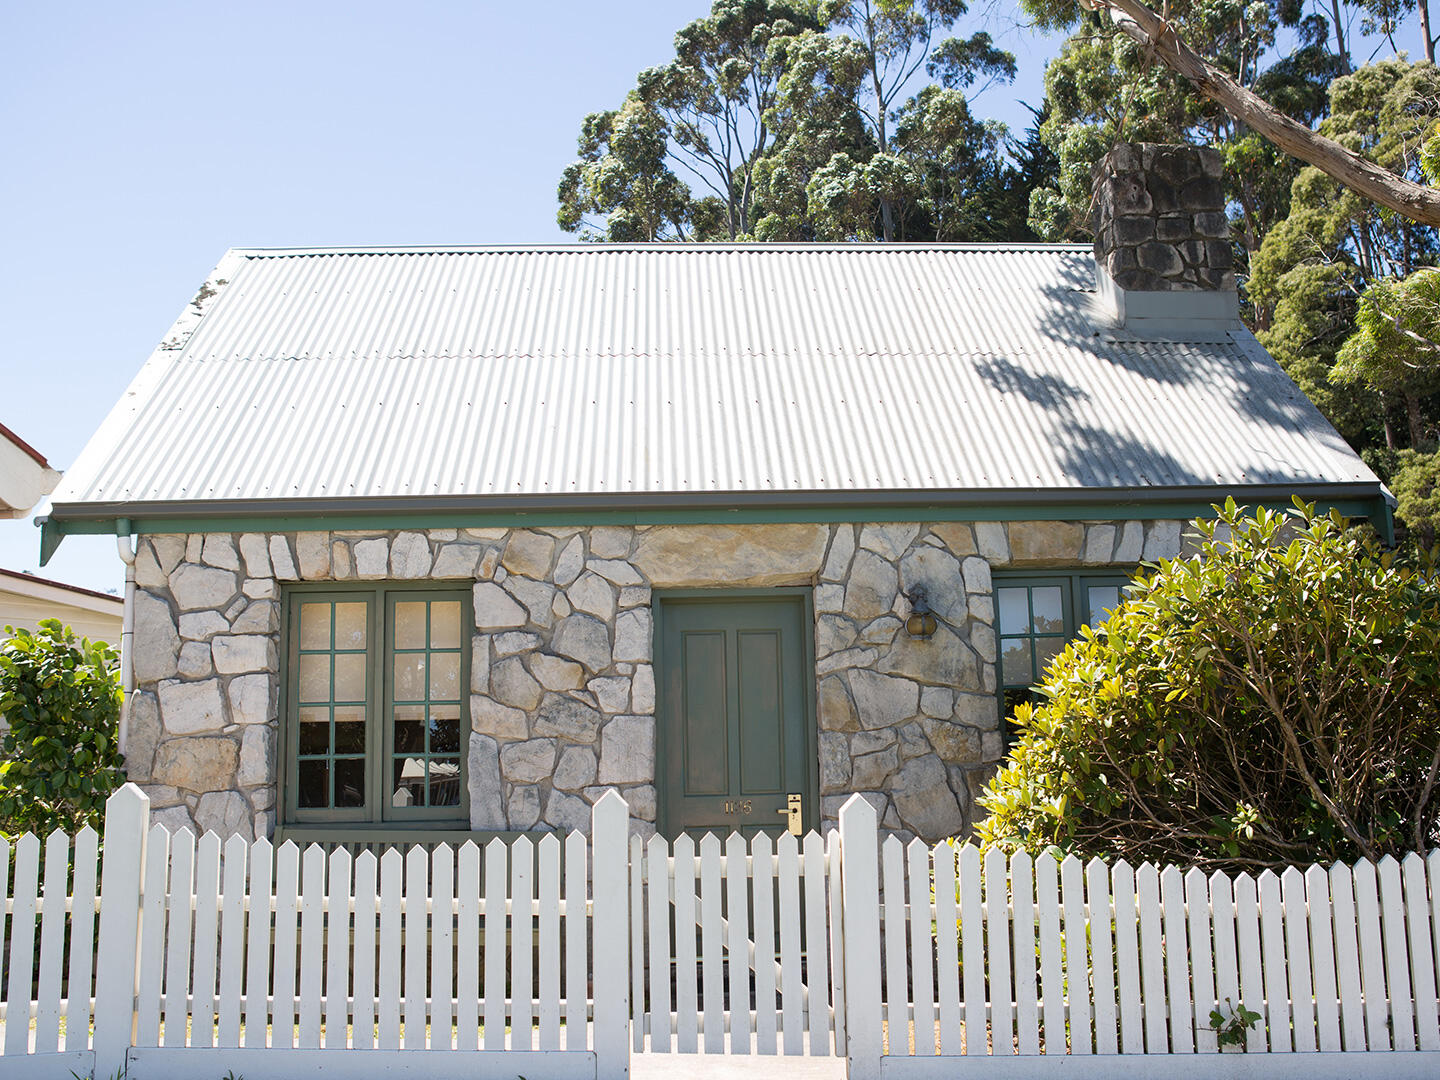 Exterior view of Village Waterfront Cottage at Strahan Village